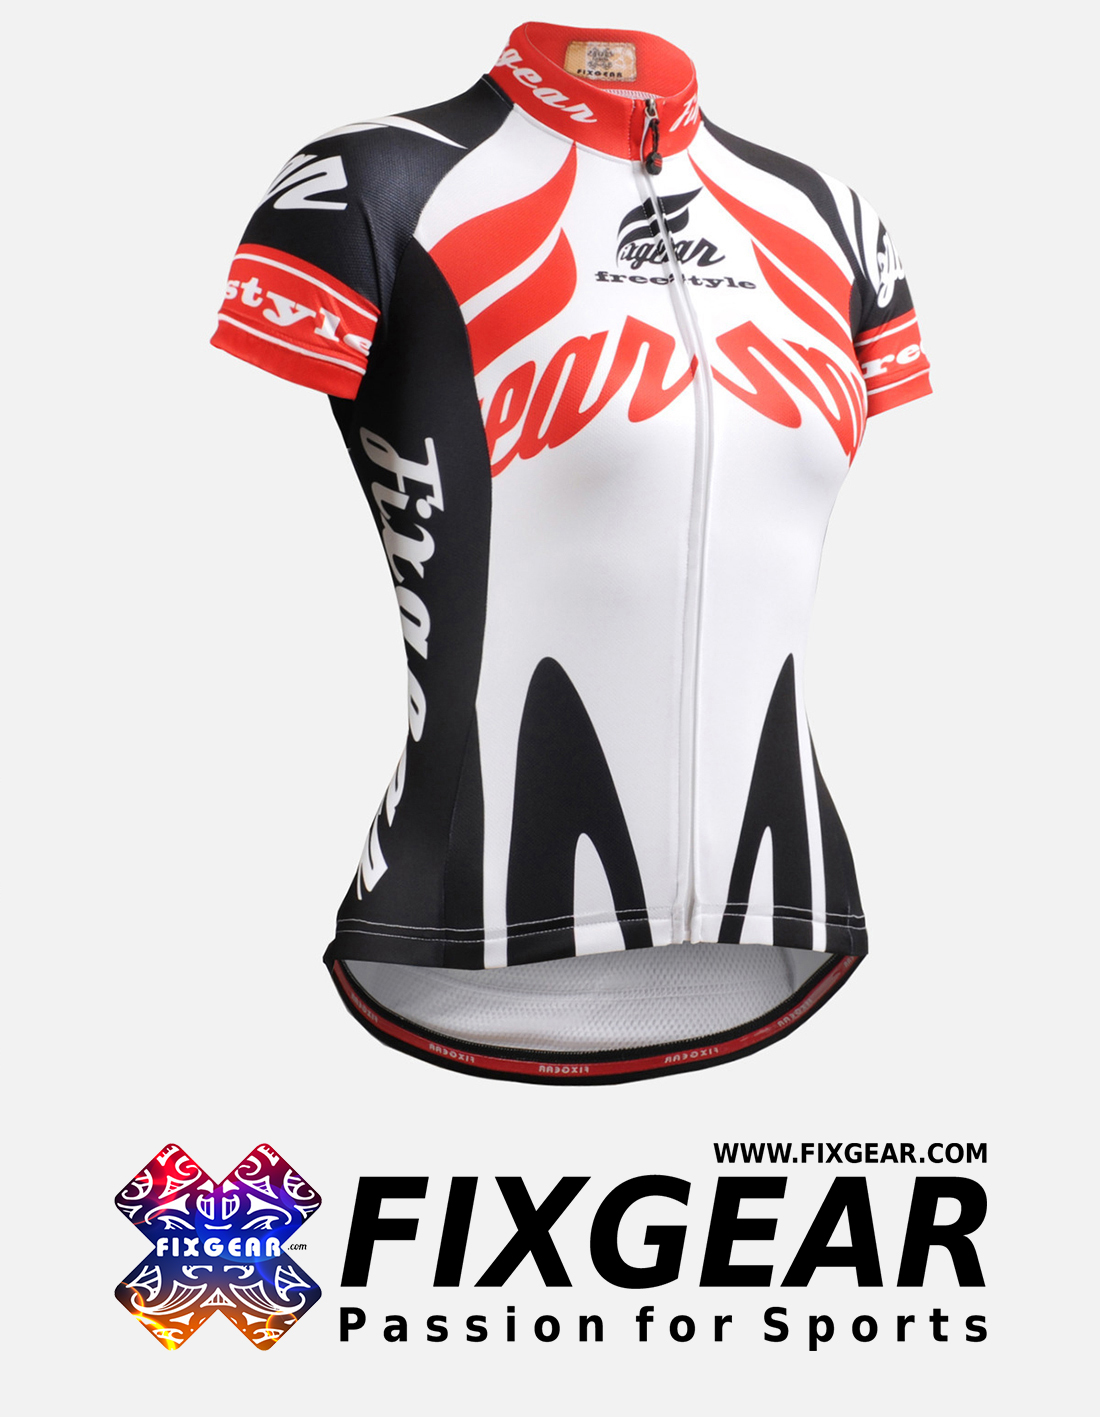 FIXGEAR CS-W1202 Women's Short Sleeve Jersey